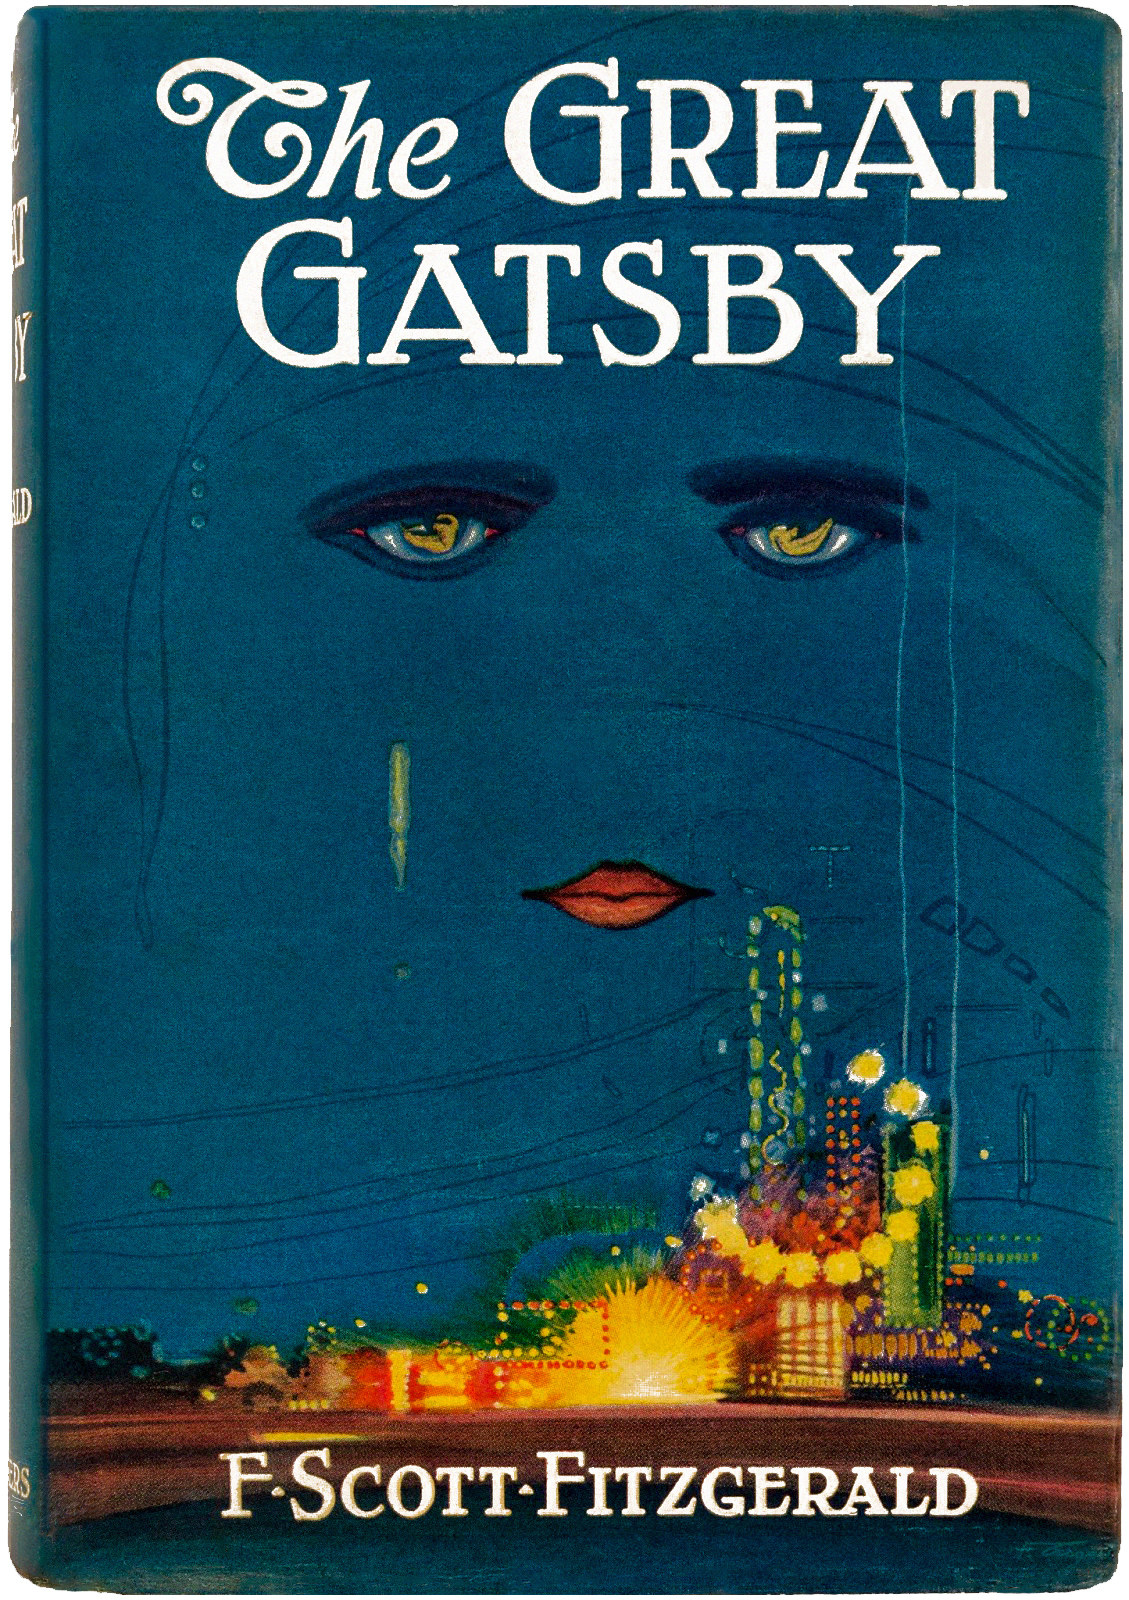 A pair of eyes looks over city lights on the cover of The Great Gatsby